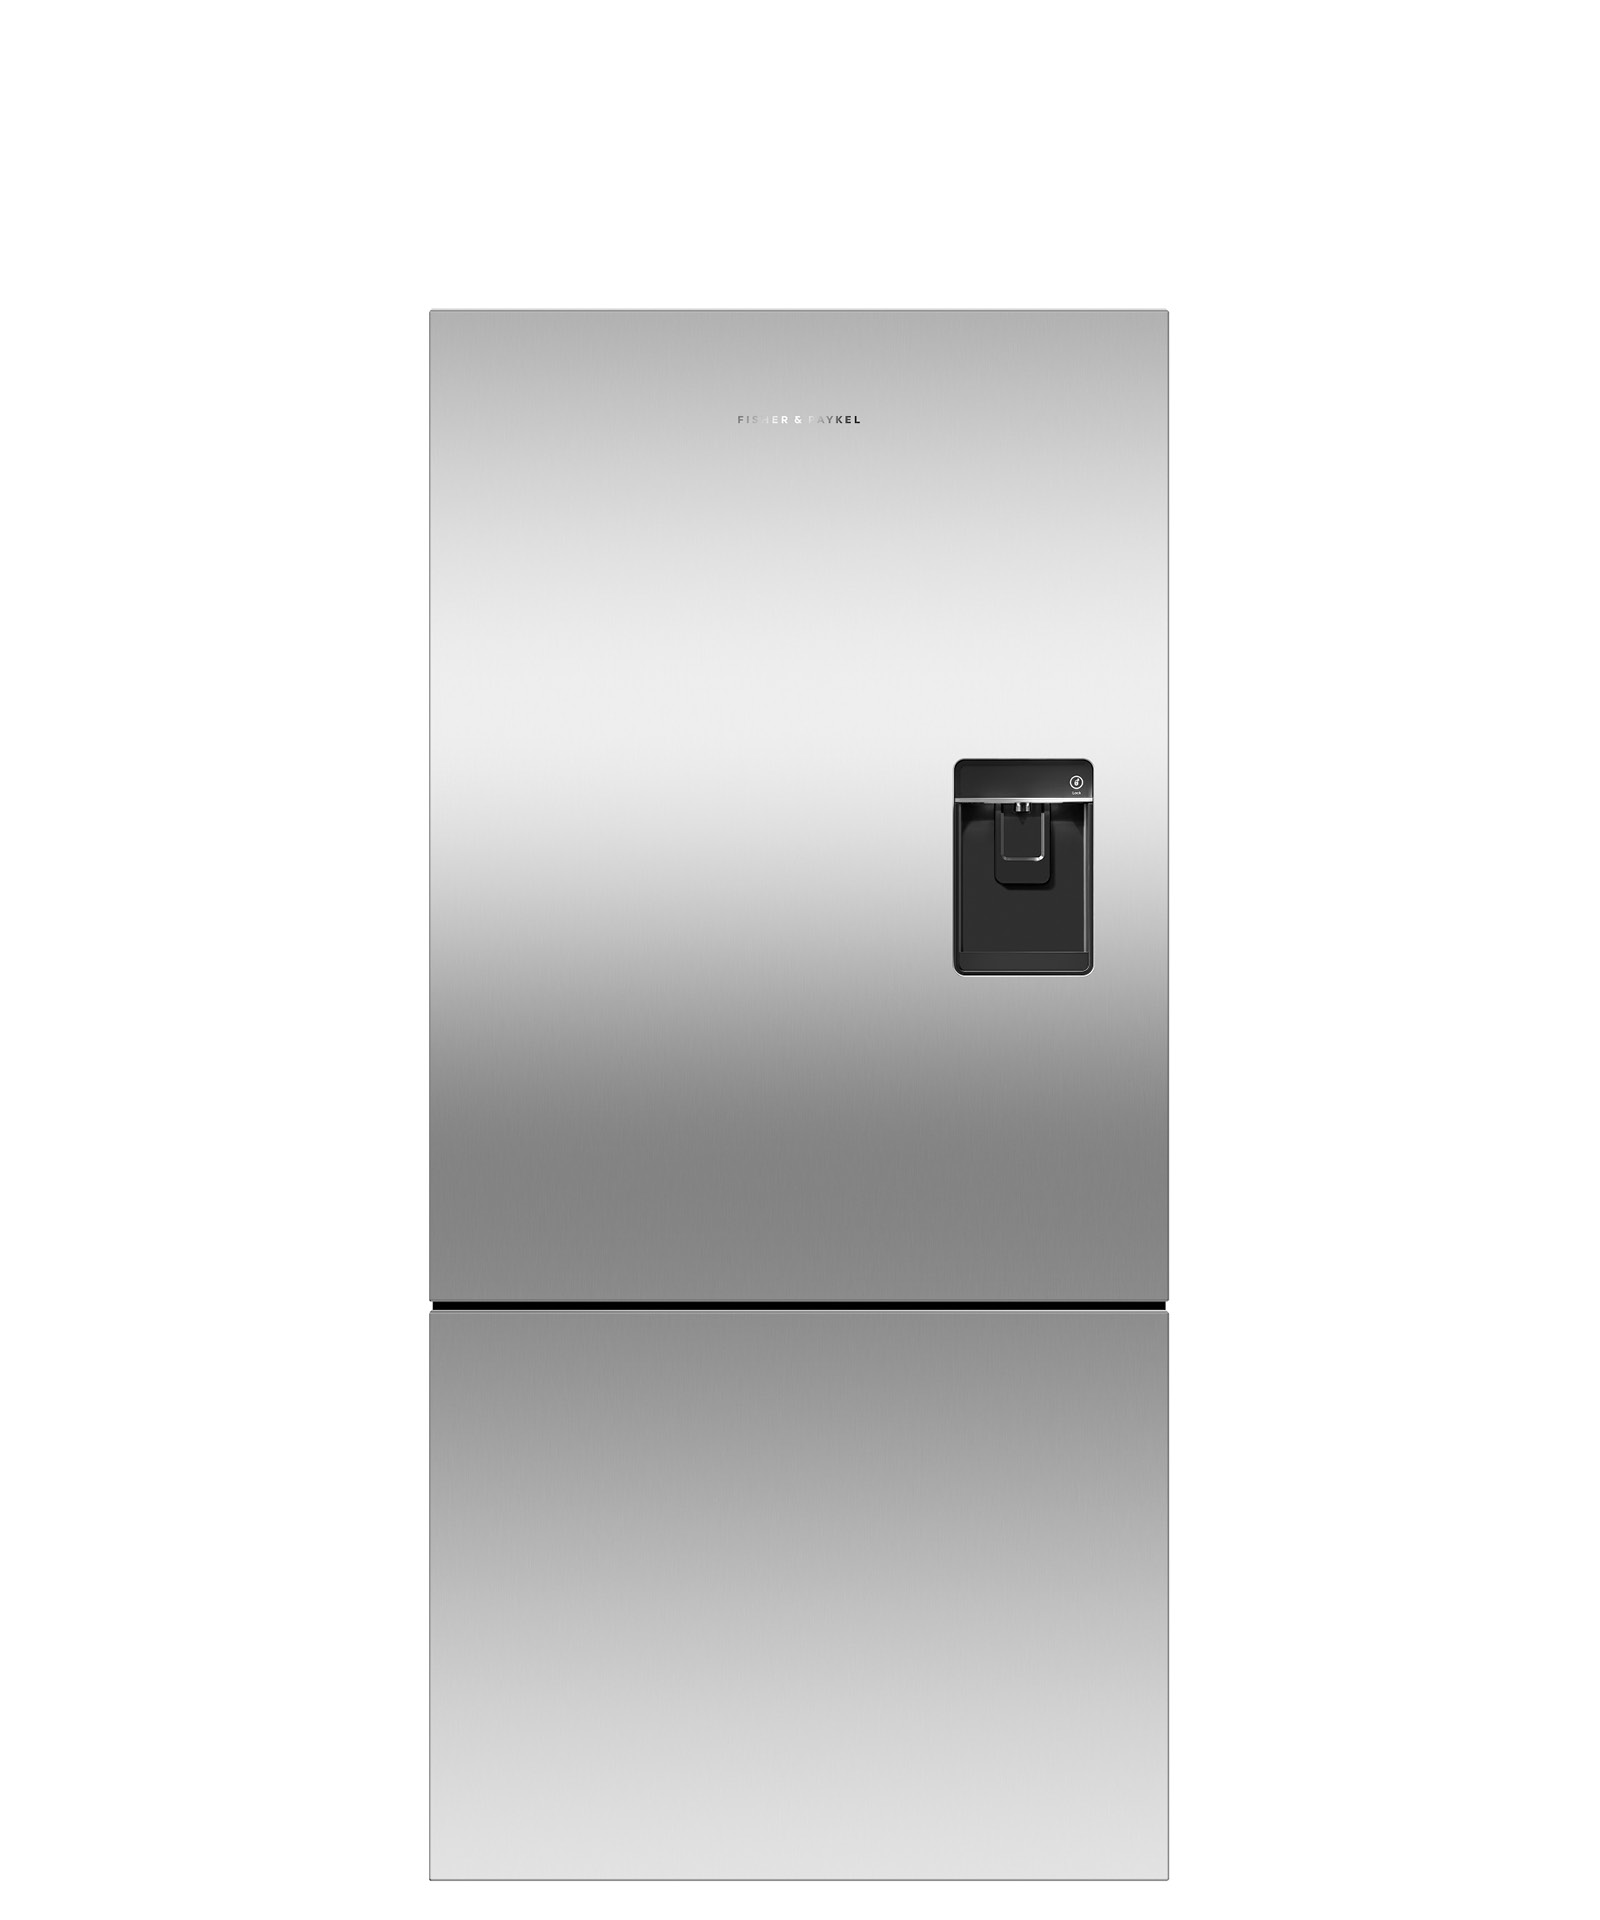 Fisher and Paykel Counter Depth Refrigerator 17.5 cu ft, Ice & Water